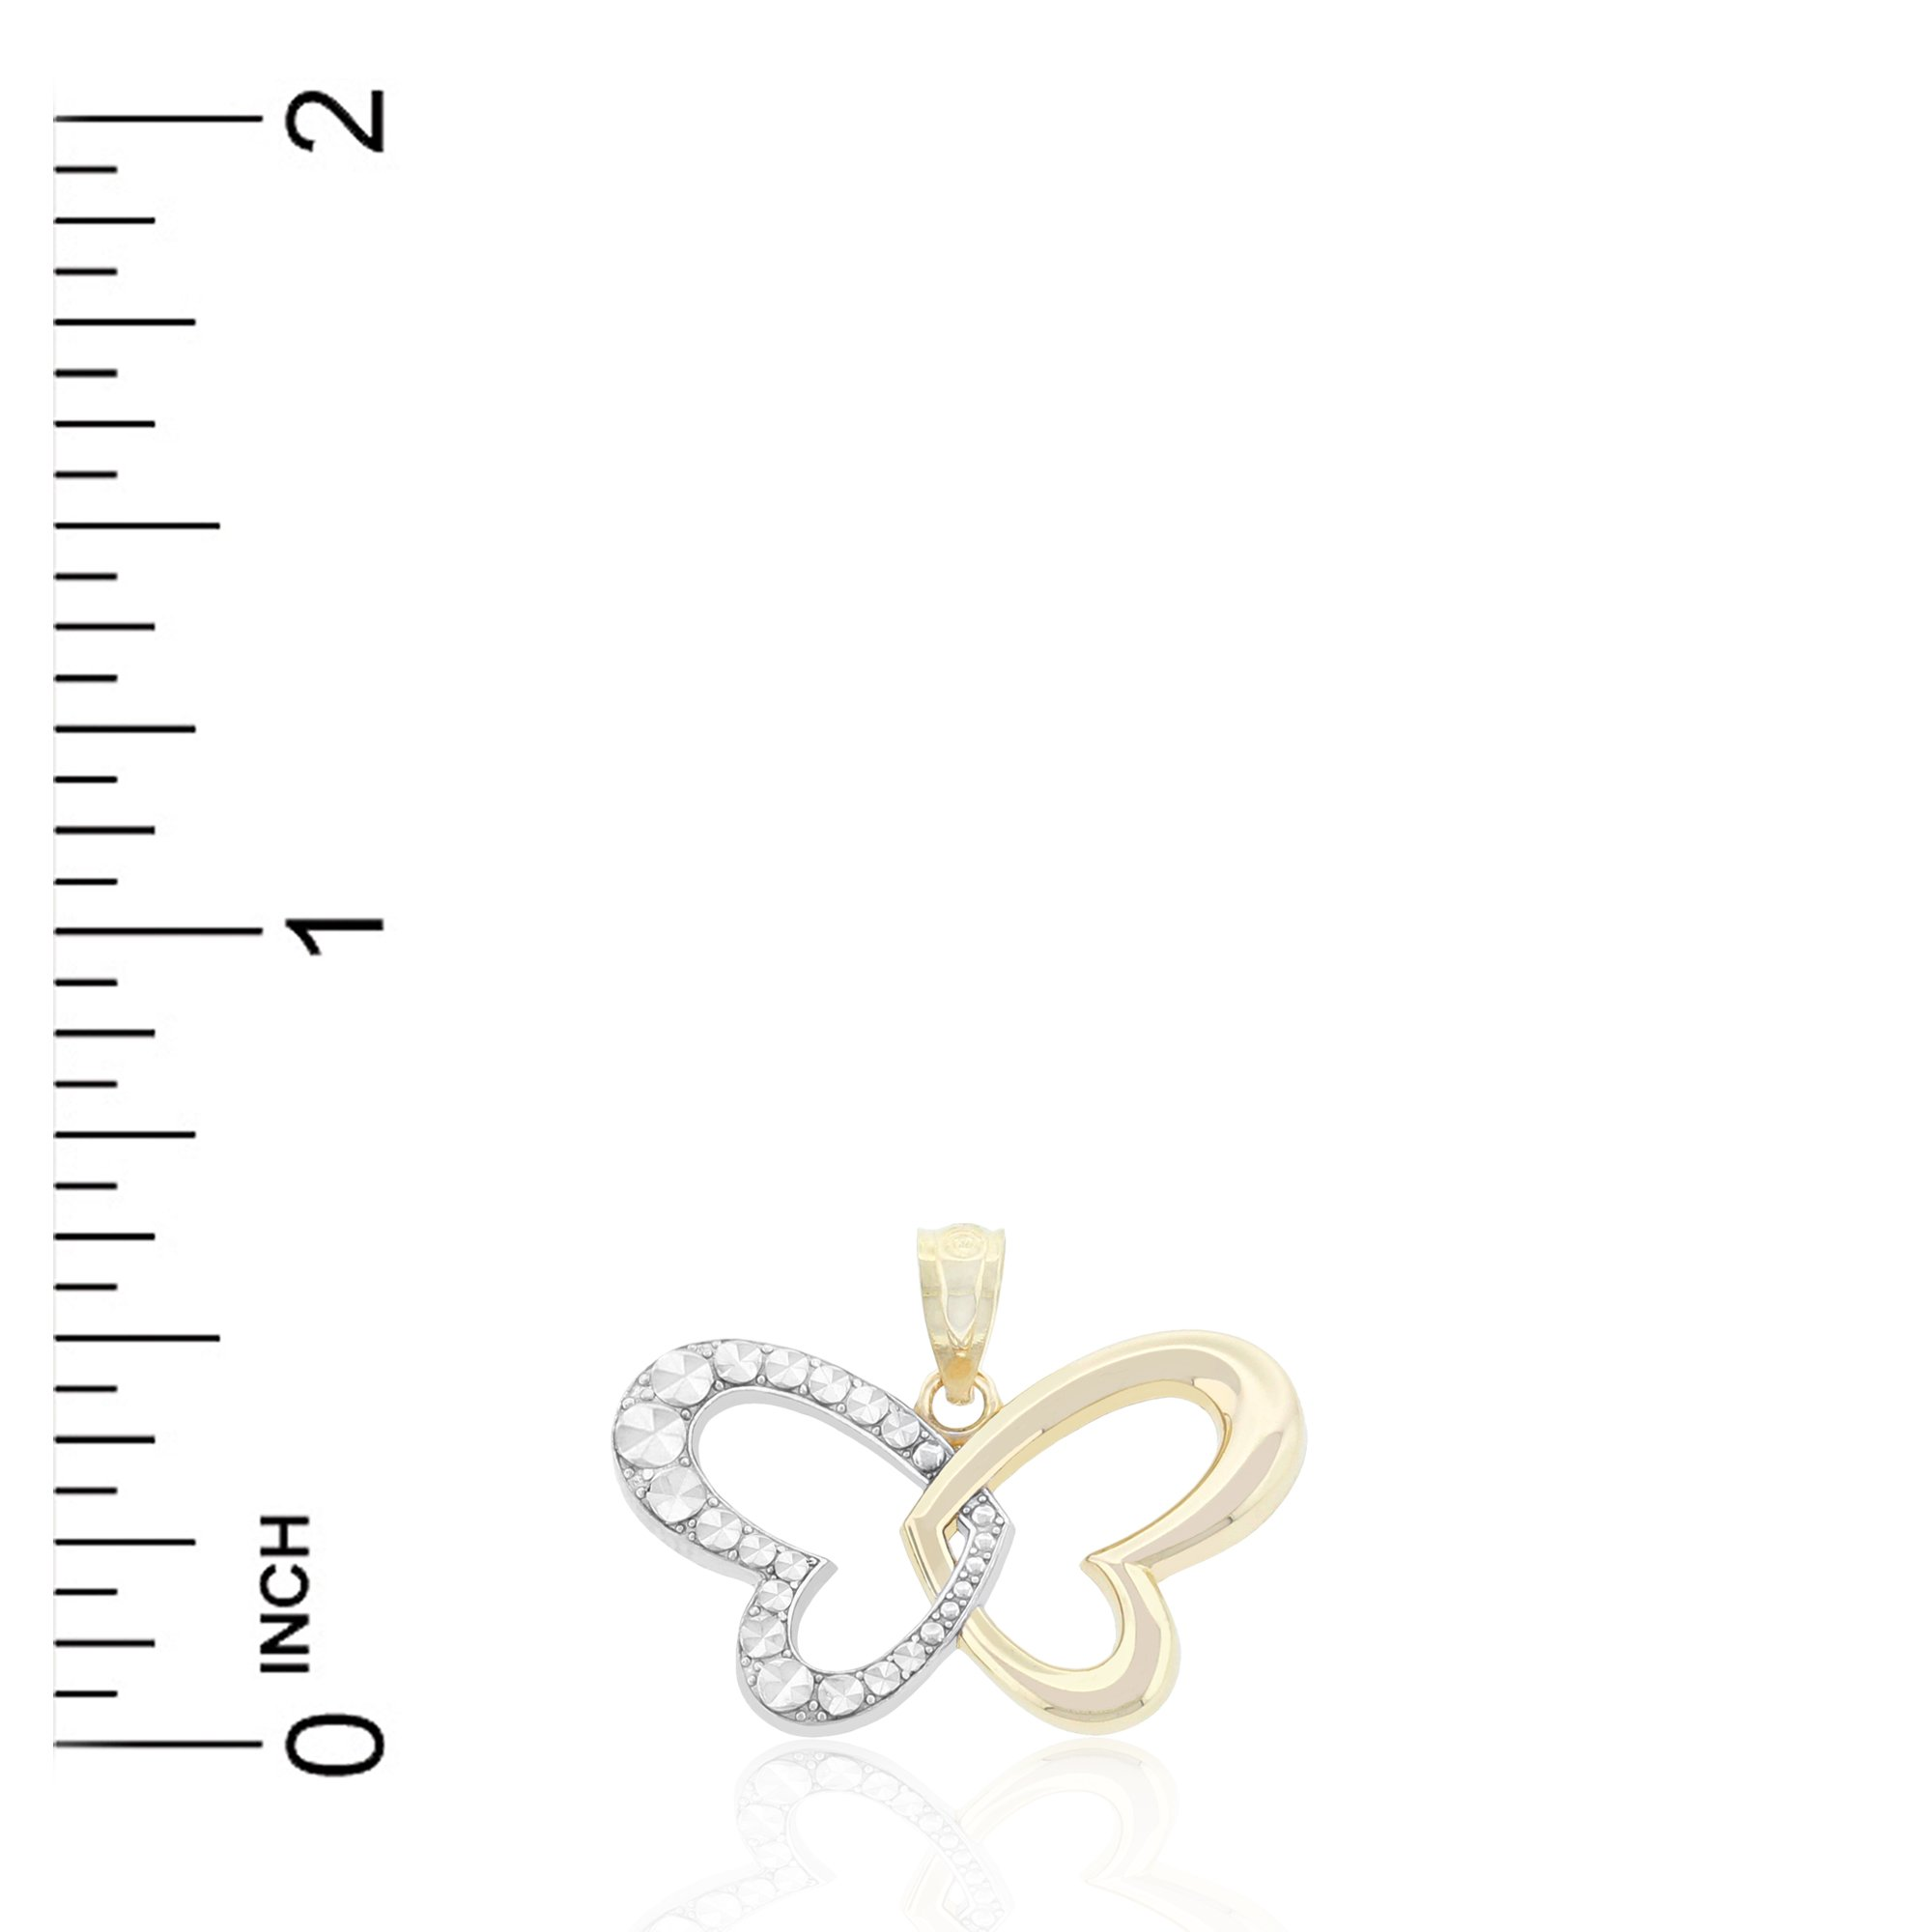 Charm America - Gold Heart Winged Butterfly Charm - 10 Karat Solid Gold by Charm America (Image #2)